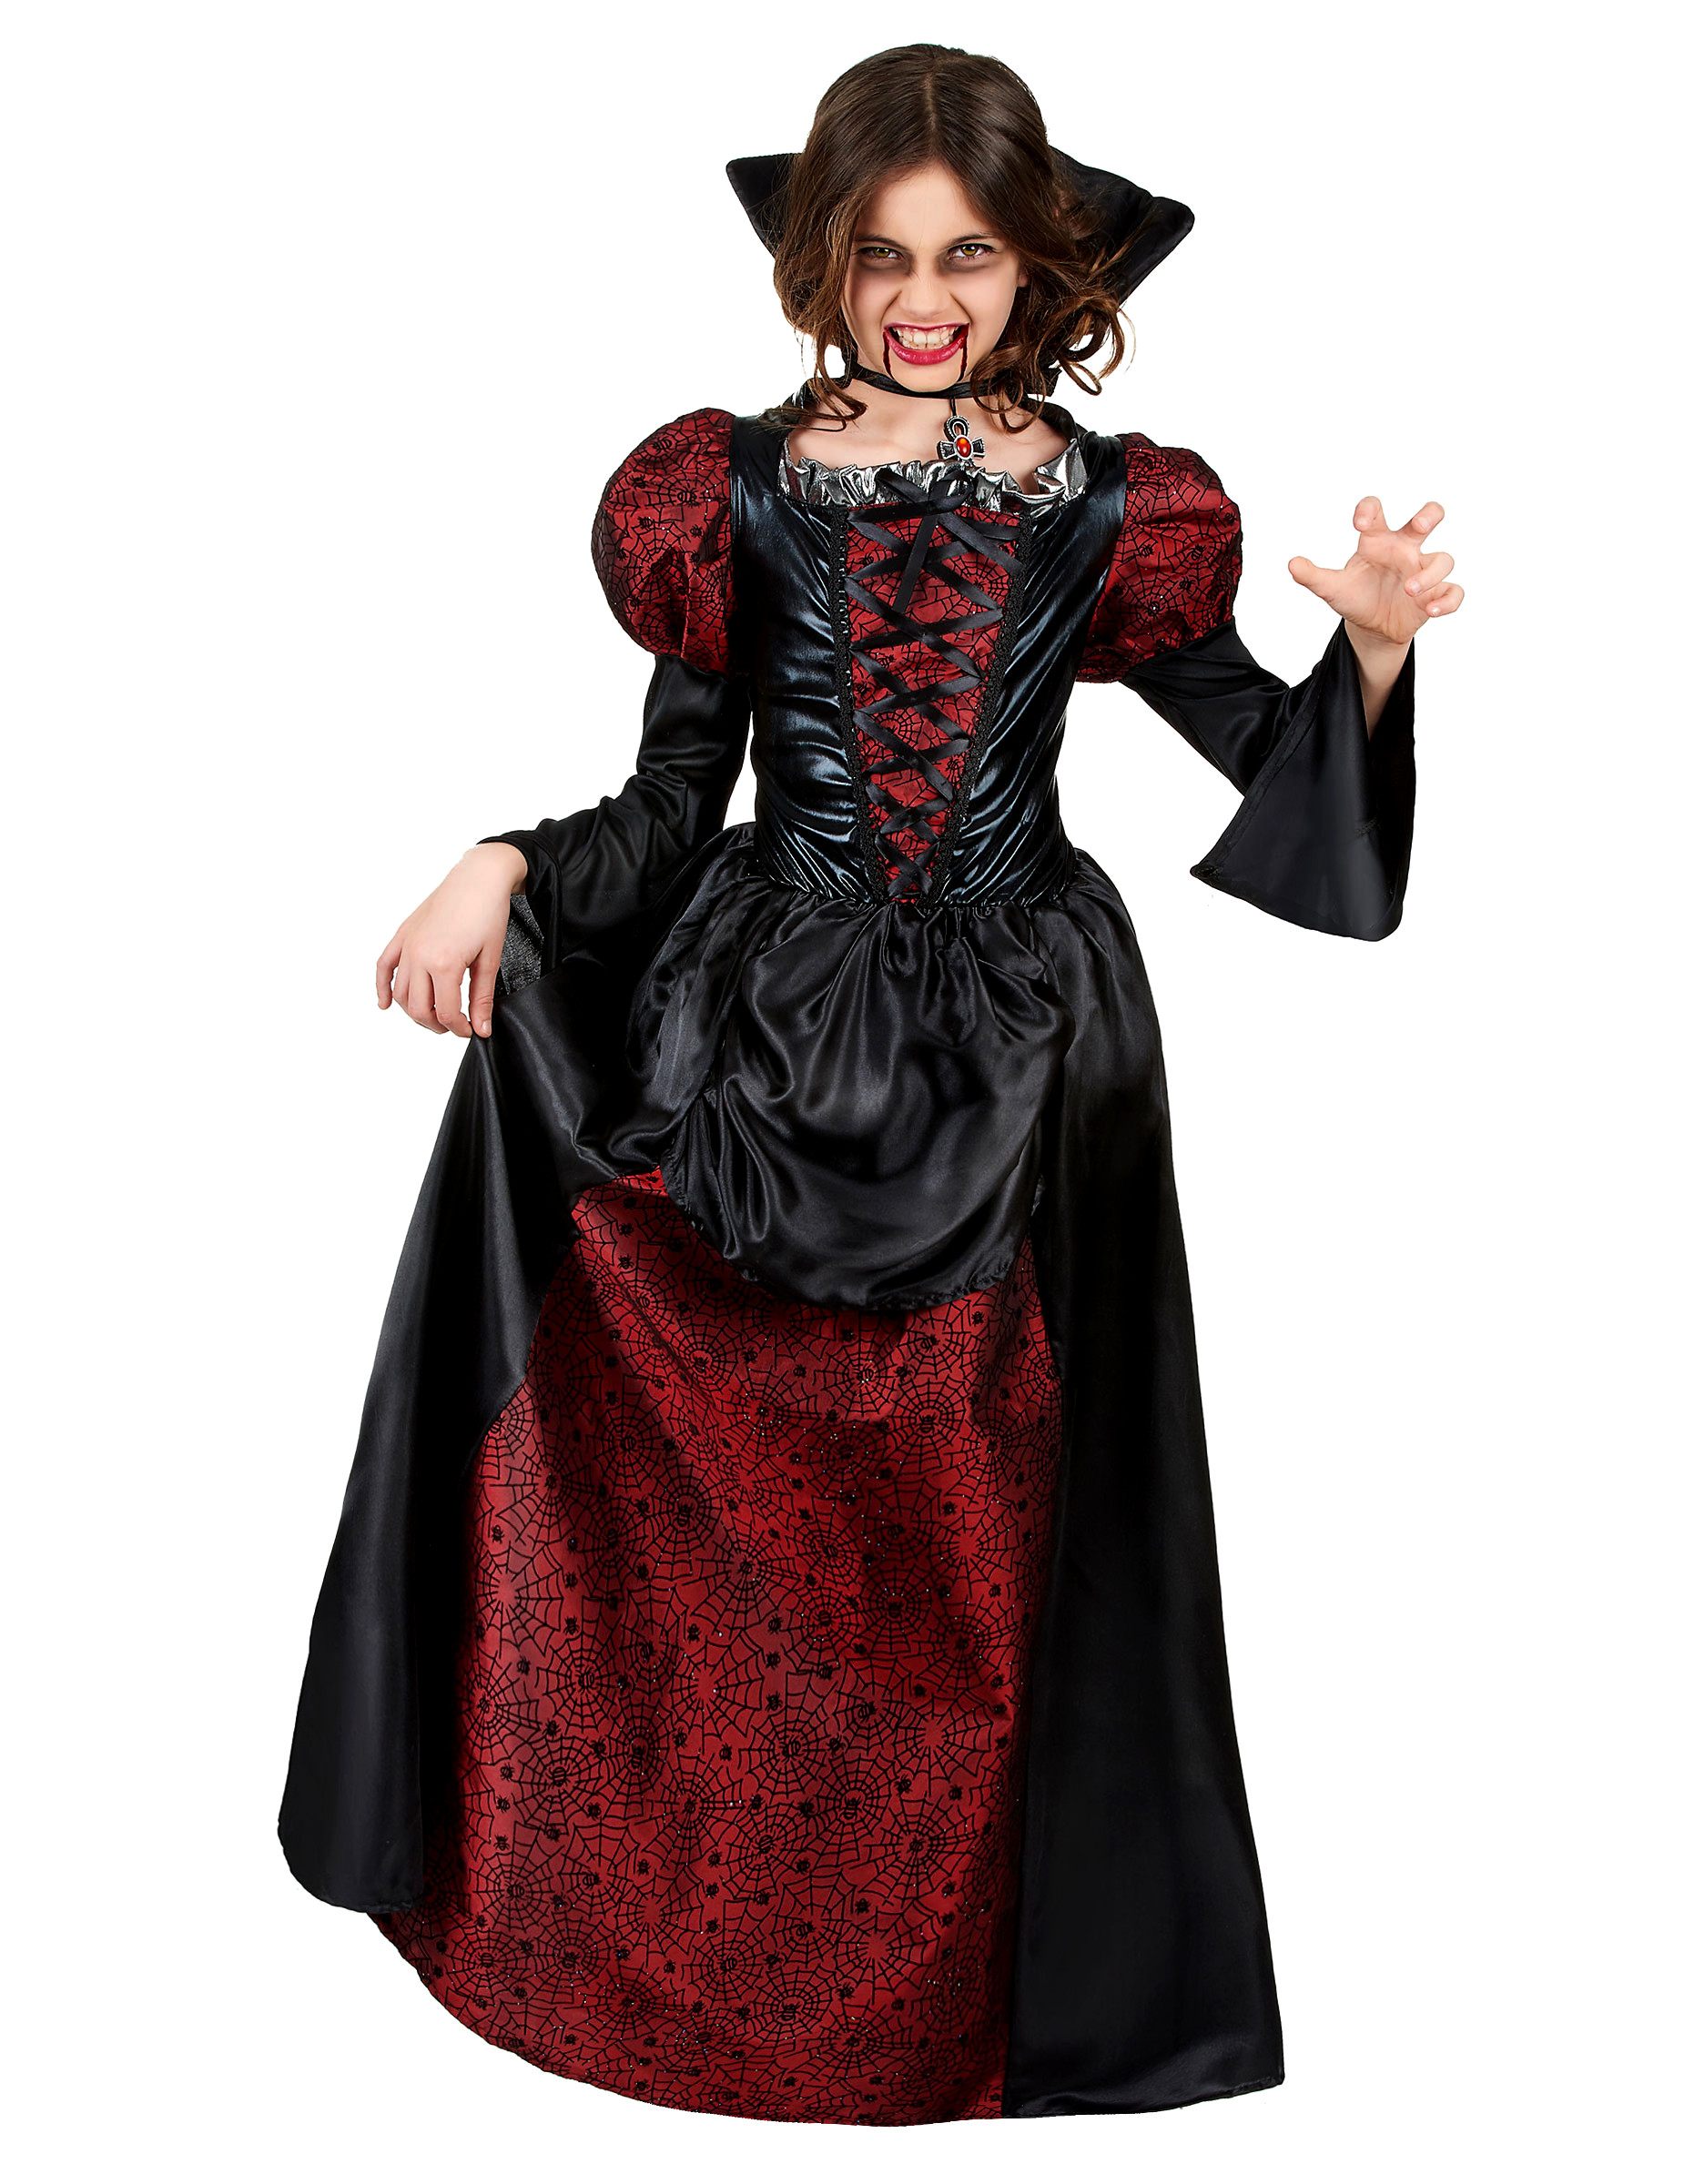 prezzi incredibili presa all'ingrosso bel design Costume da contessa vampiro per bambina Halloween